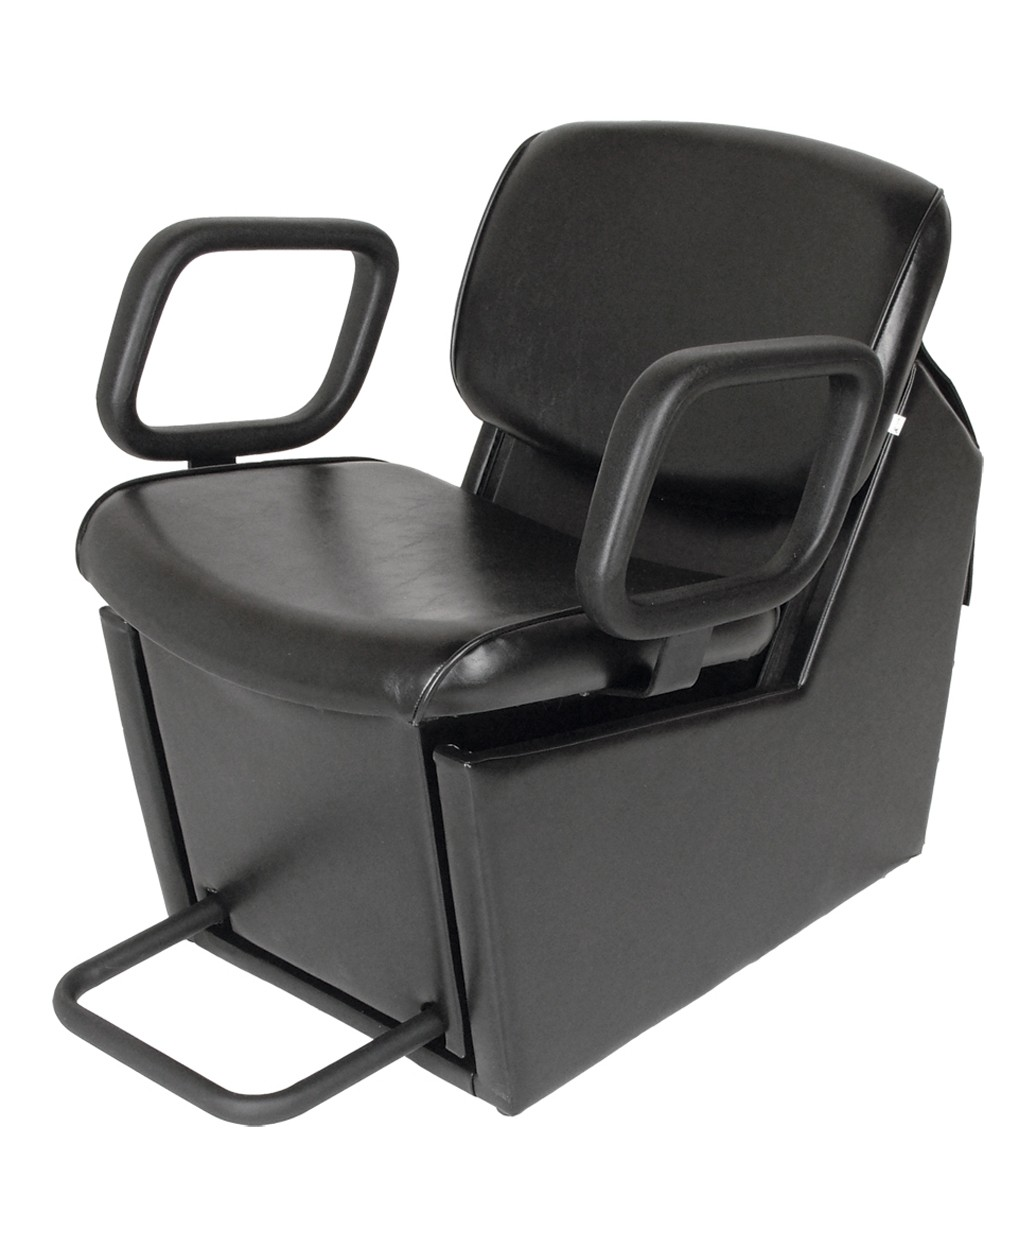 Collins QSE 59 Electric Shampoo Chair w/ Leg-Rest